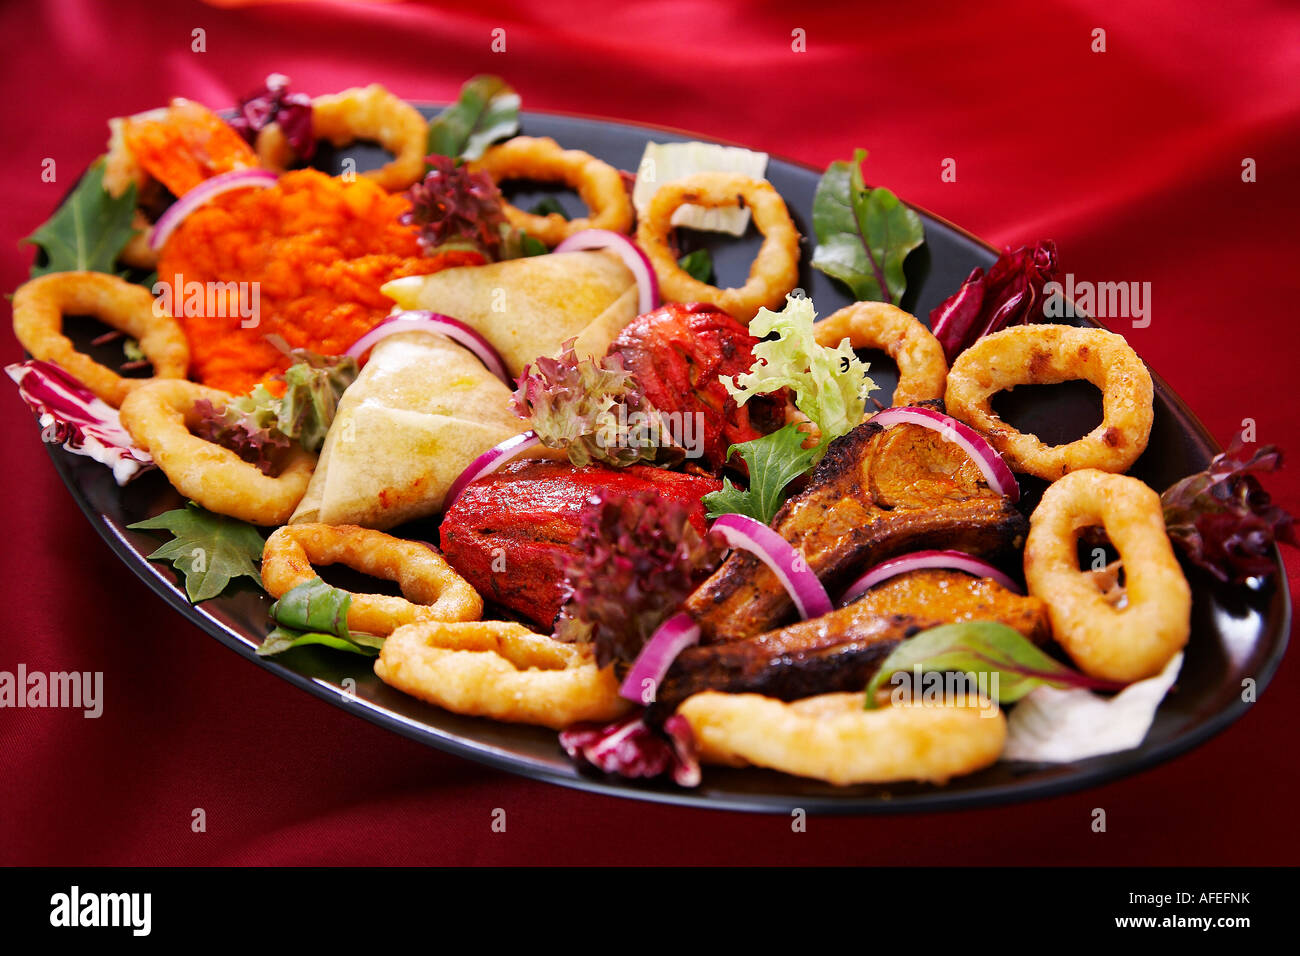 Indian Food Platter Starter To Share Stock Photo Alamy